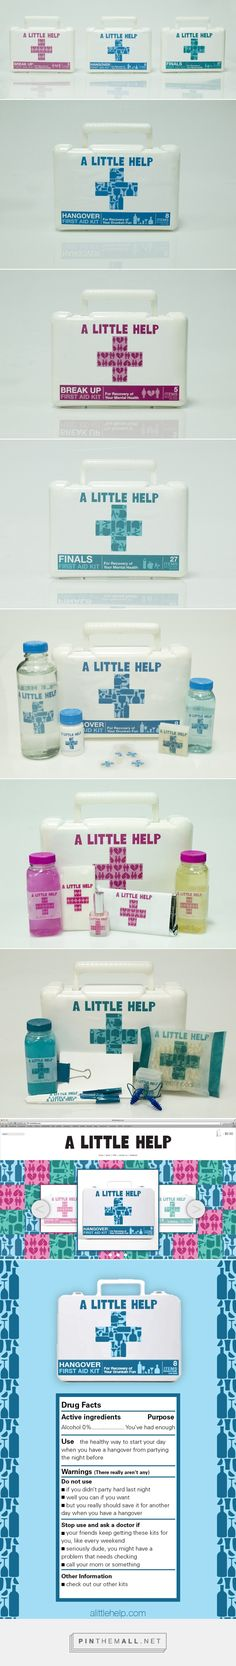 A Little Help kit packaging on Behance by Stacy Kamin Curated by Packaging Diva PD. A Little Help is a company that sells humorous first aid kits for the college student : )